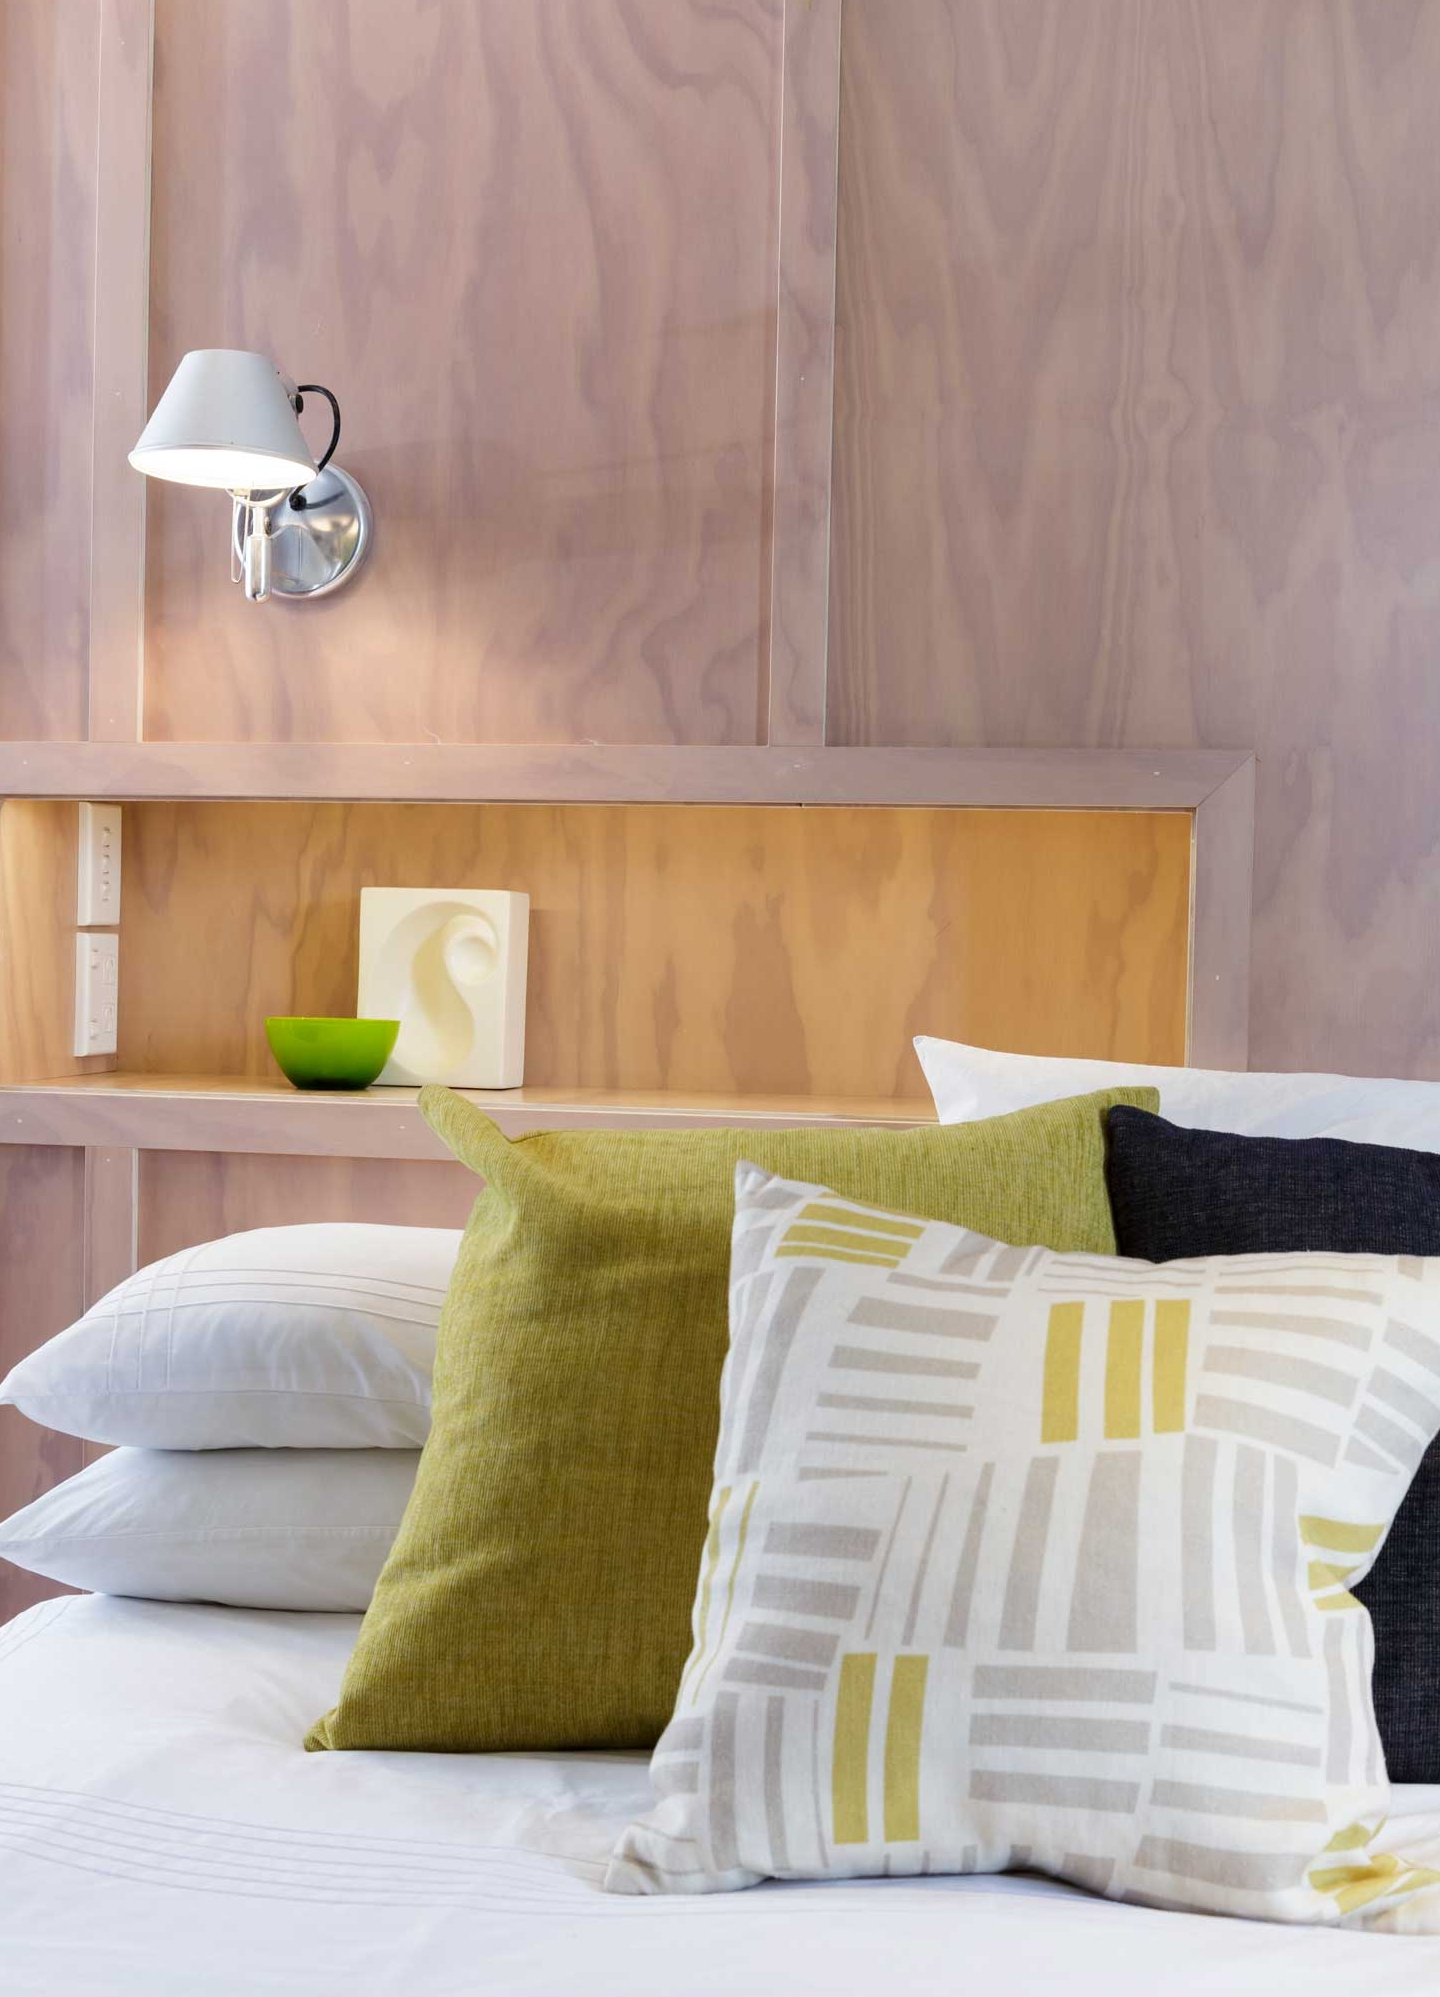 plywood style bedroom